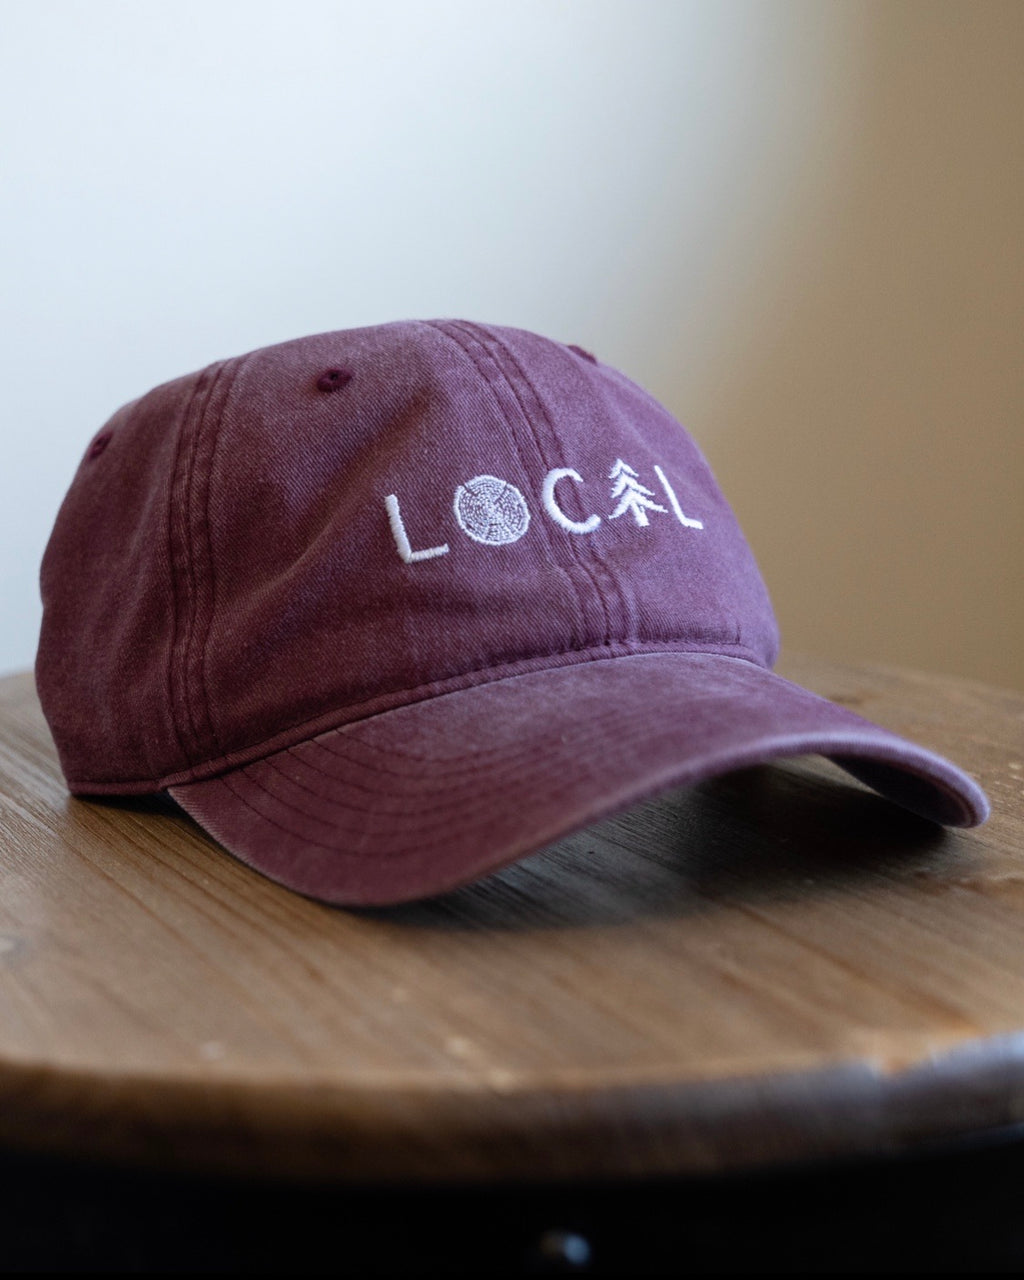 LOCAL Dad Hat - Vintage Maroon